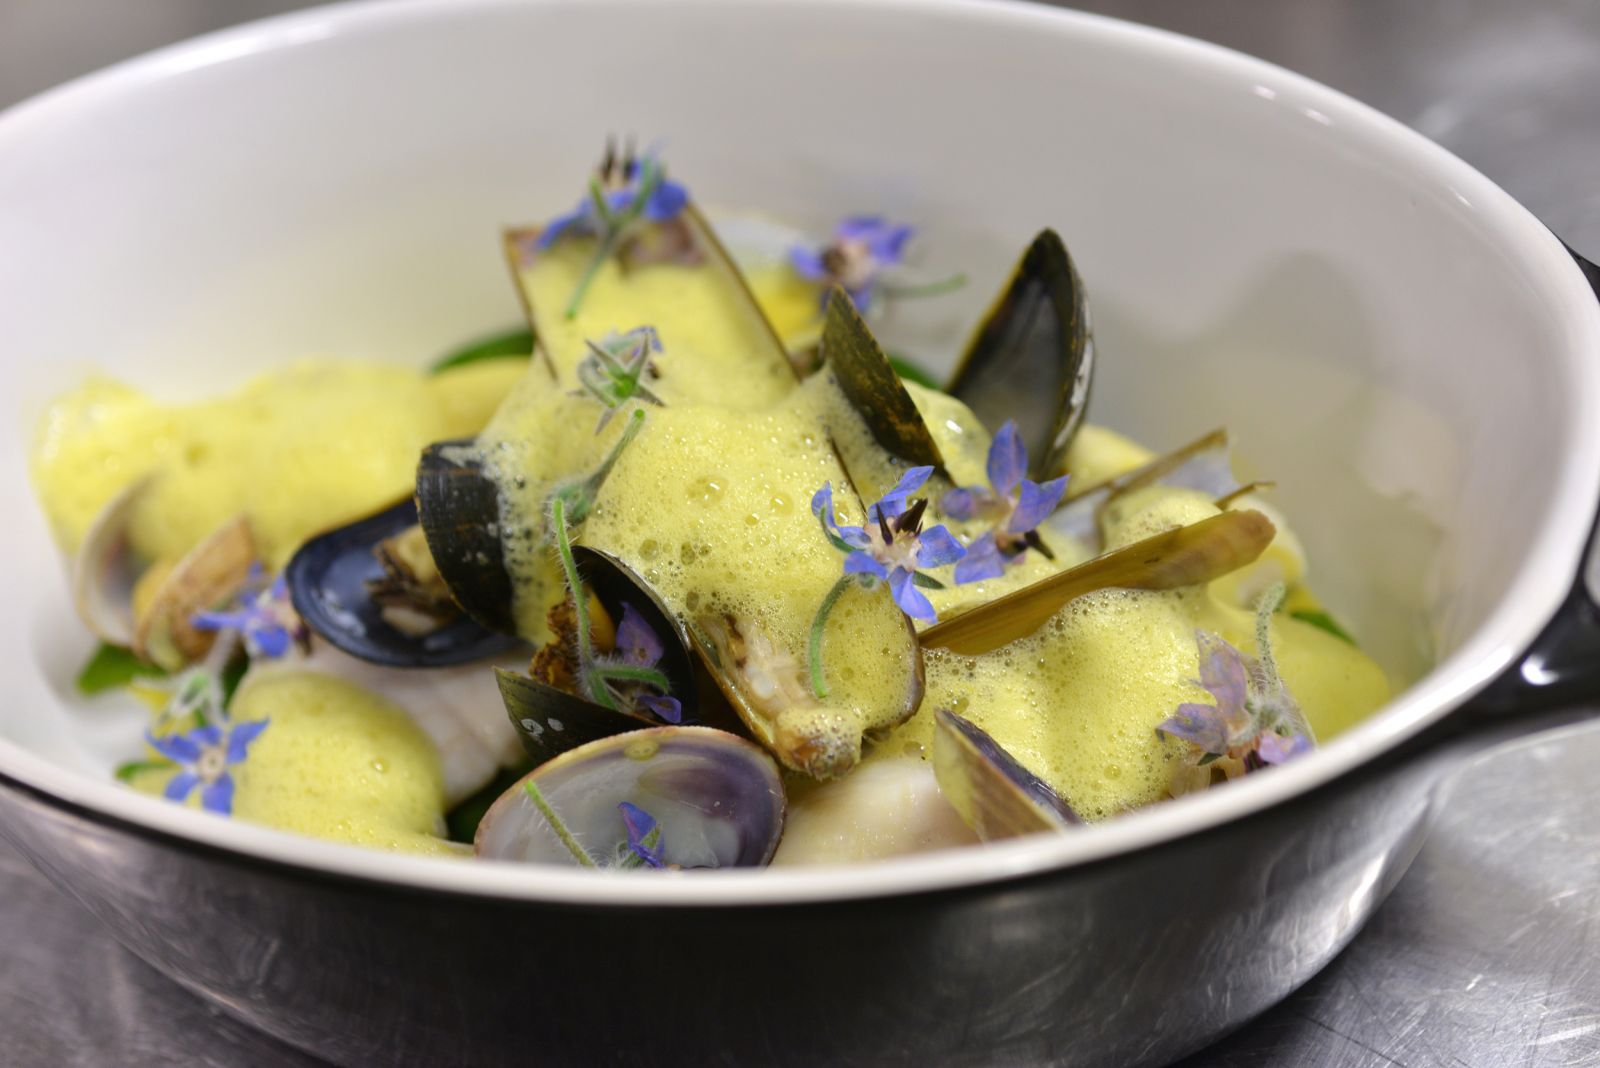 430/Photos/cuisine/moulesfleursbleus_-_copie.jpg